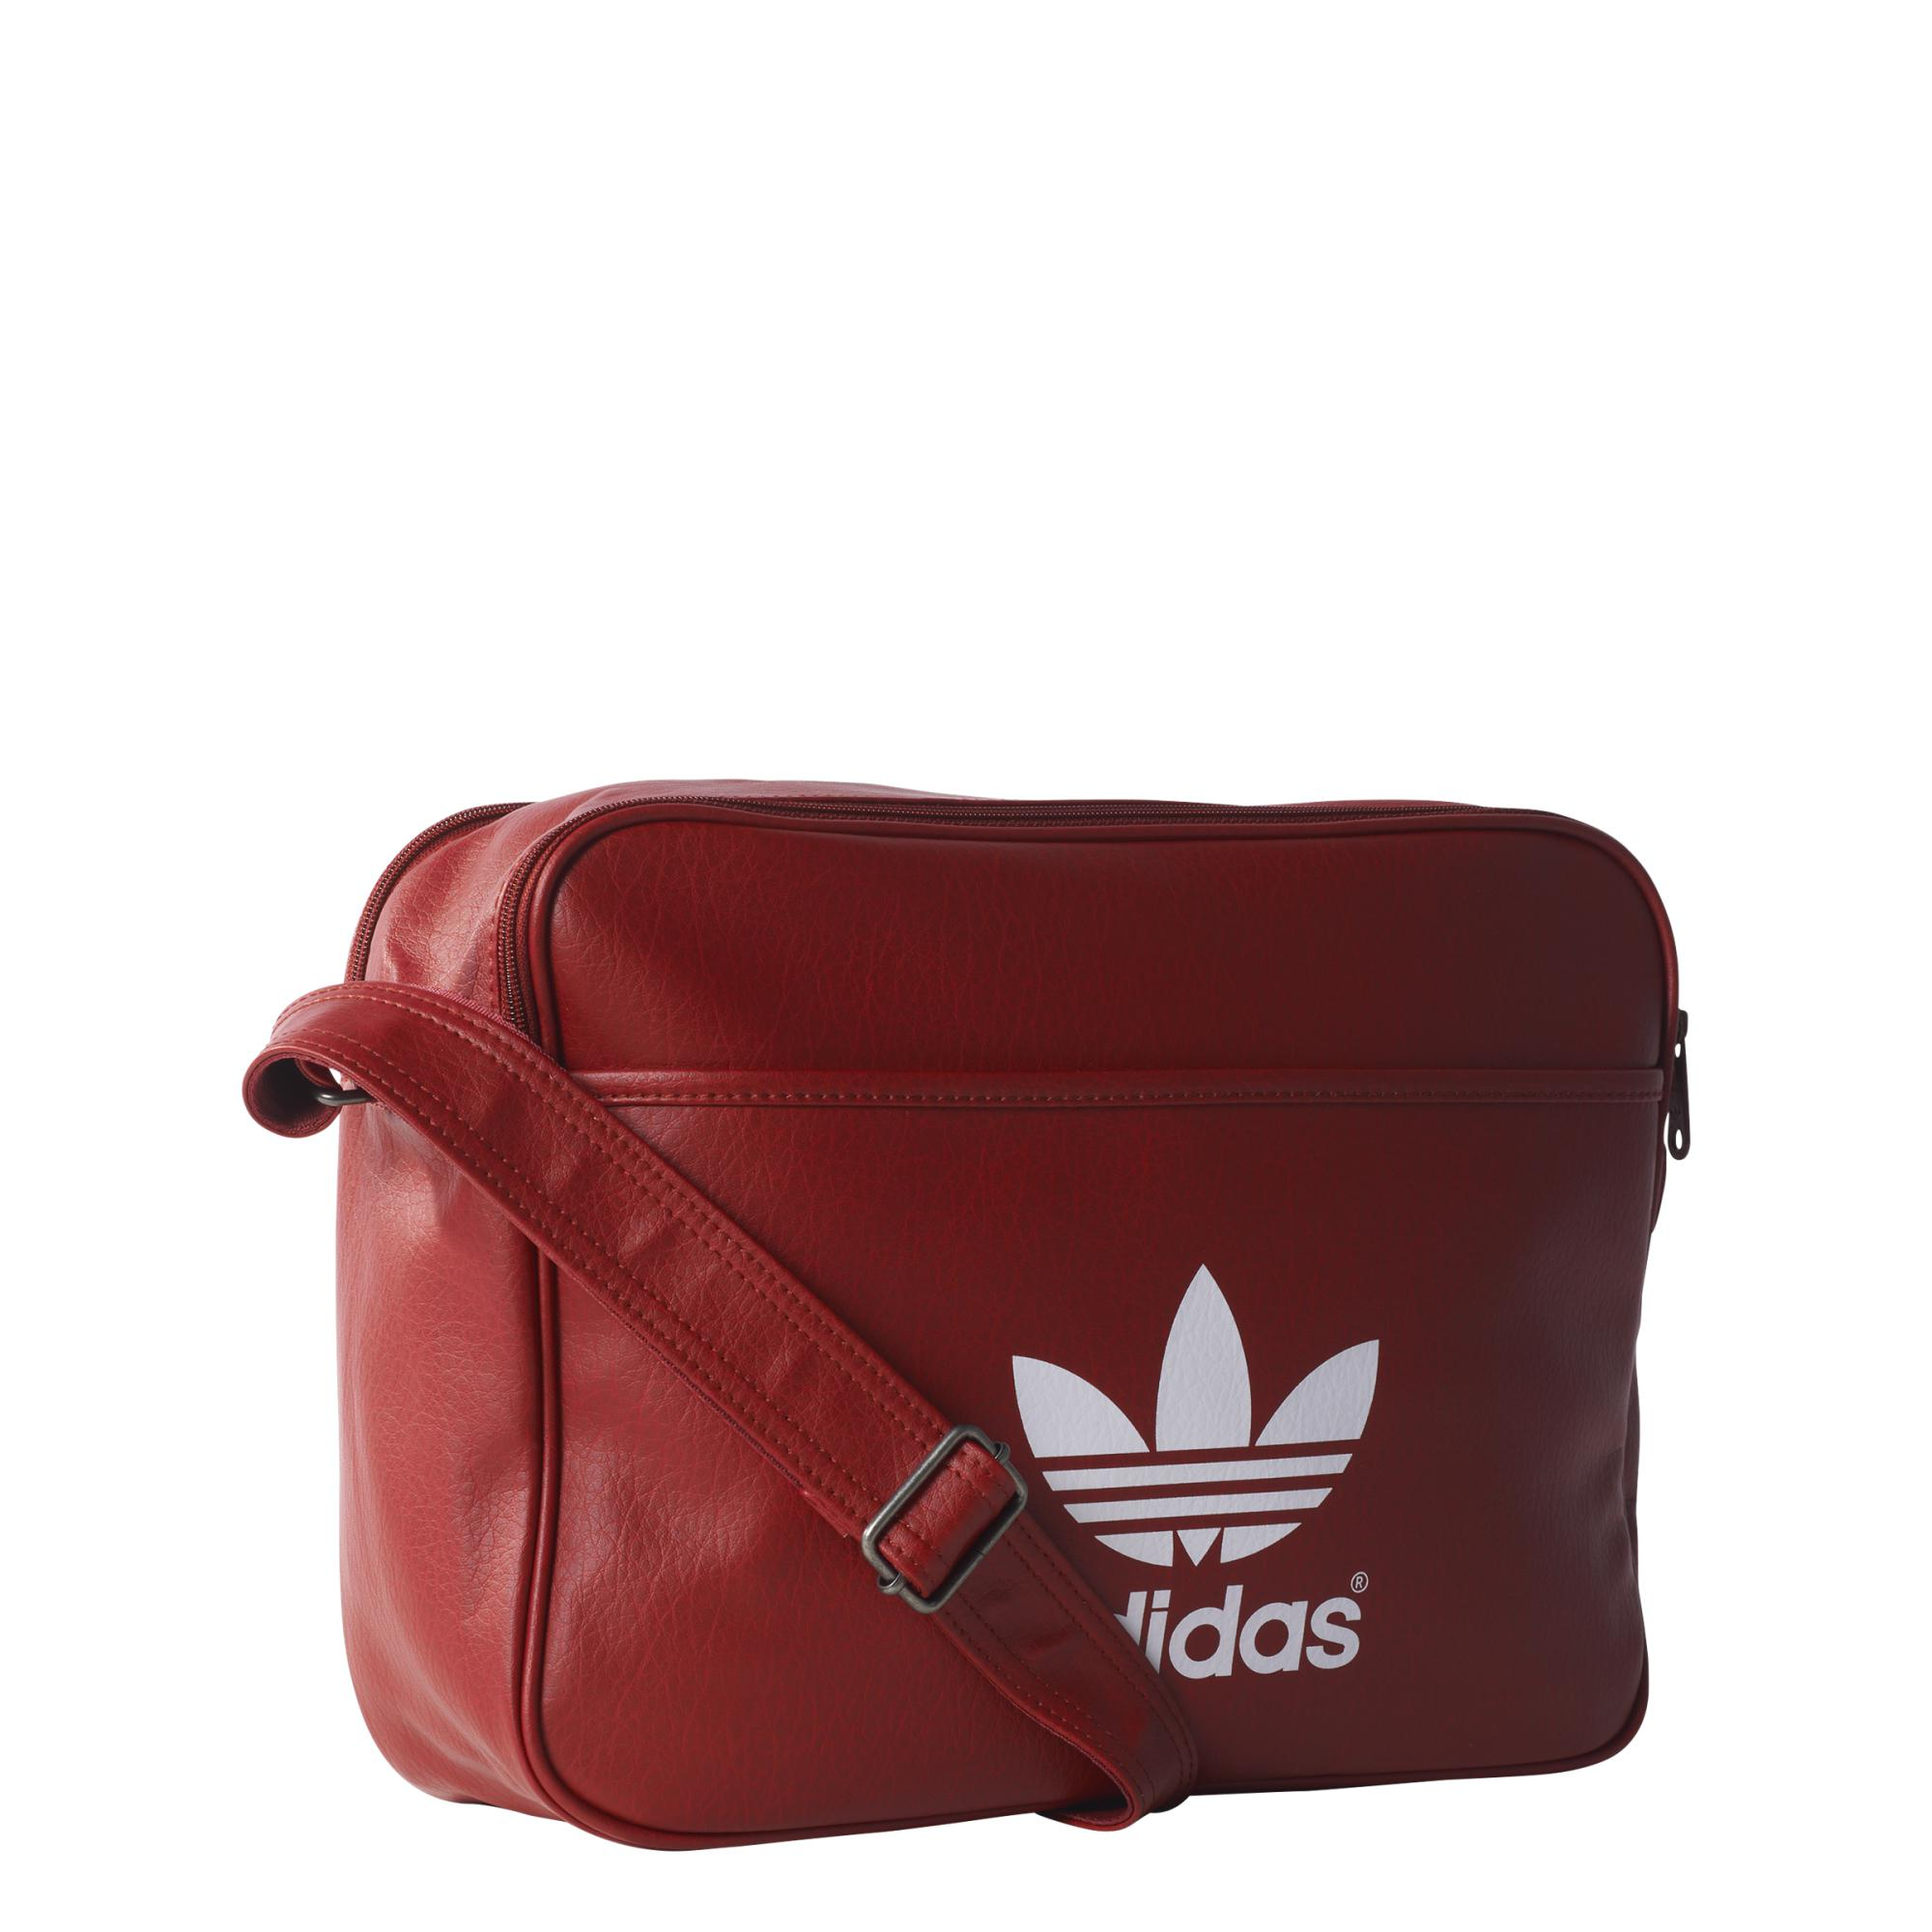 bolso adidas airline rosa